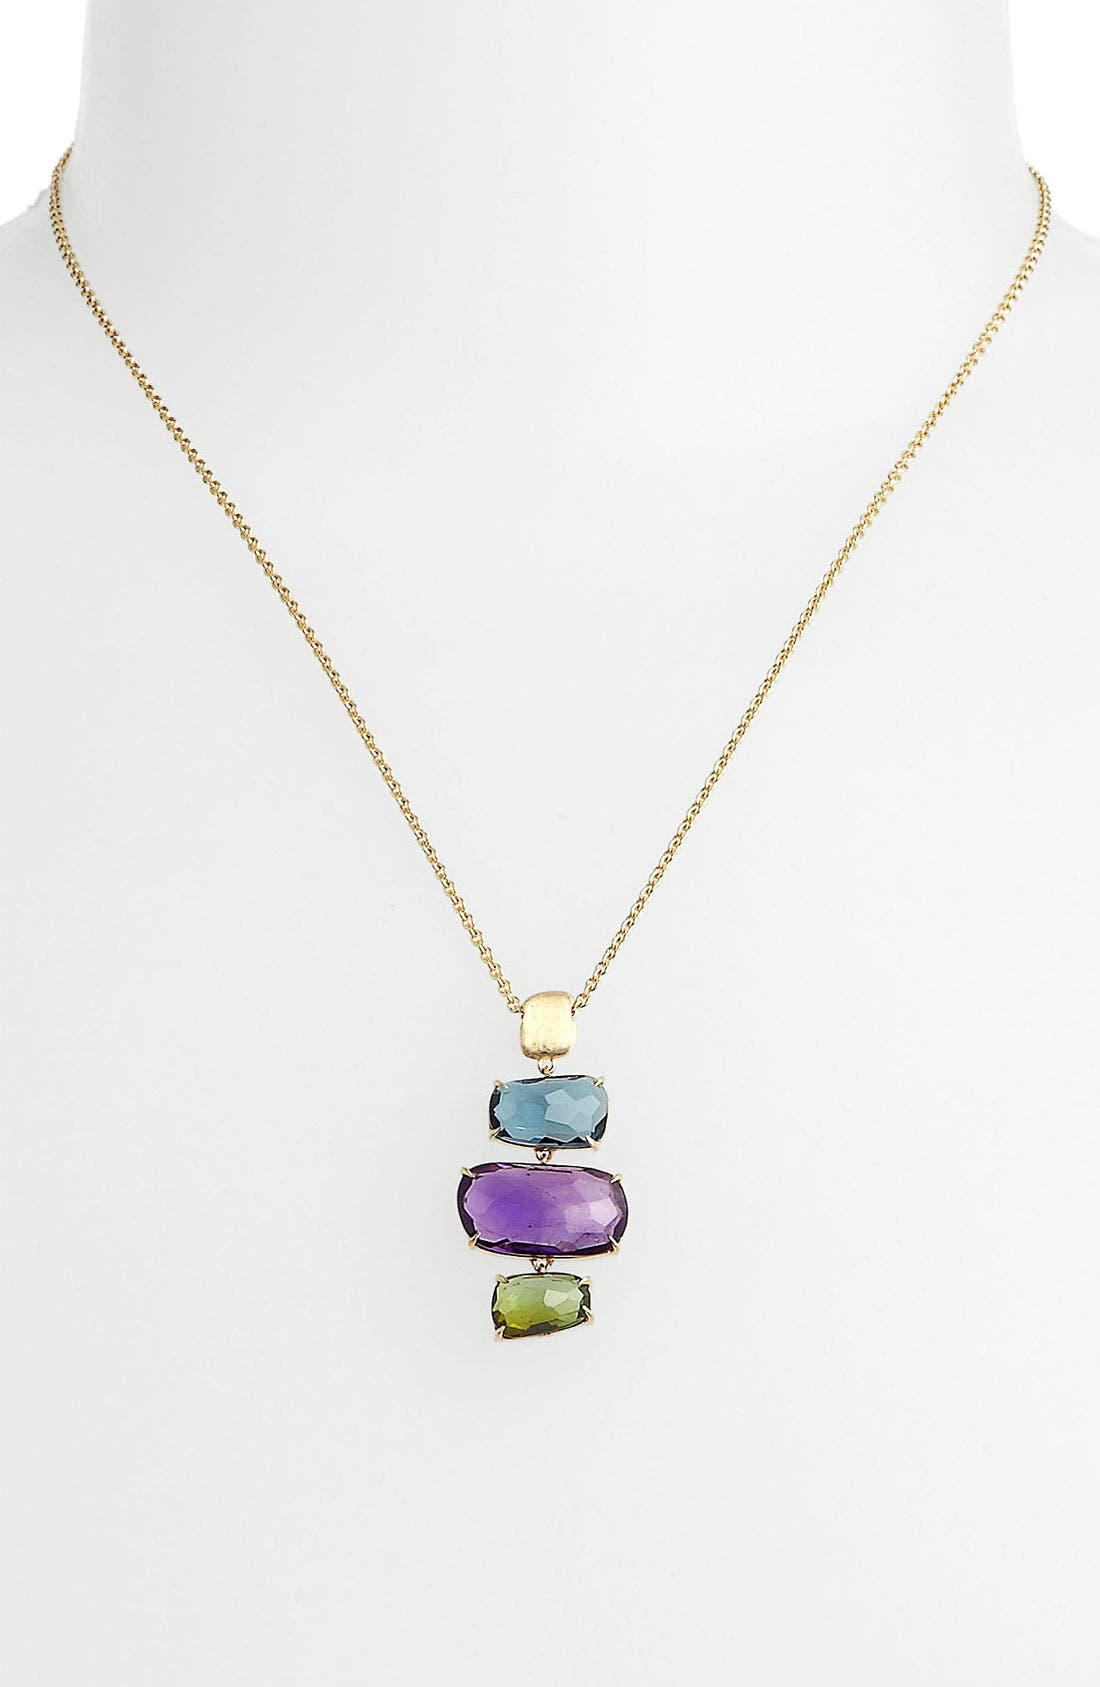 Main Image - Marco Bicego 'Murano' Mix Stone Cluster Pendant Necklace